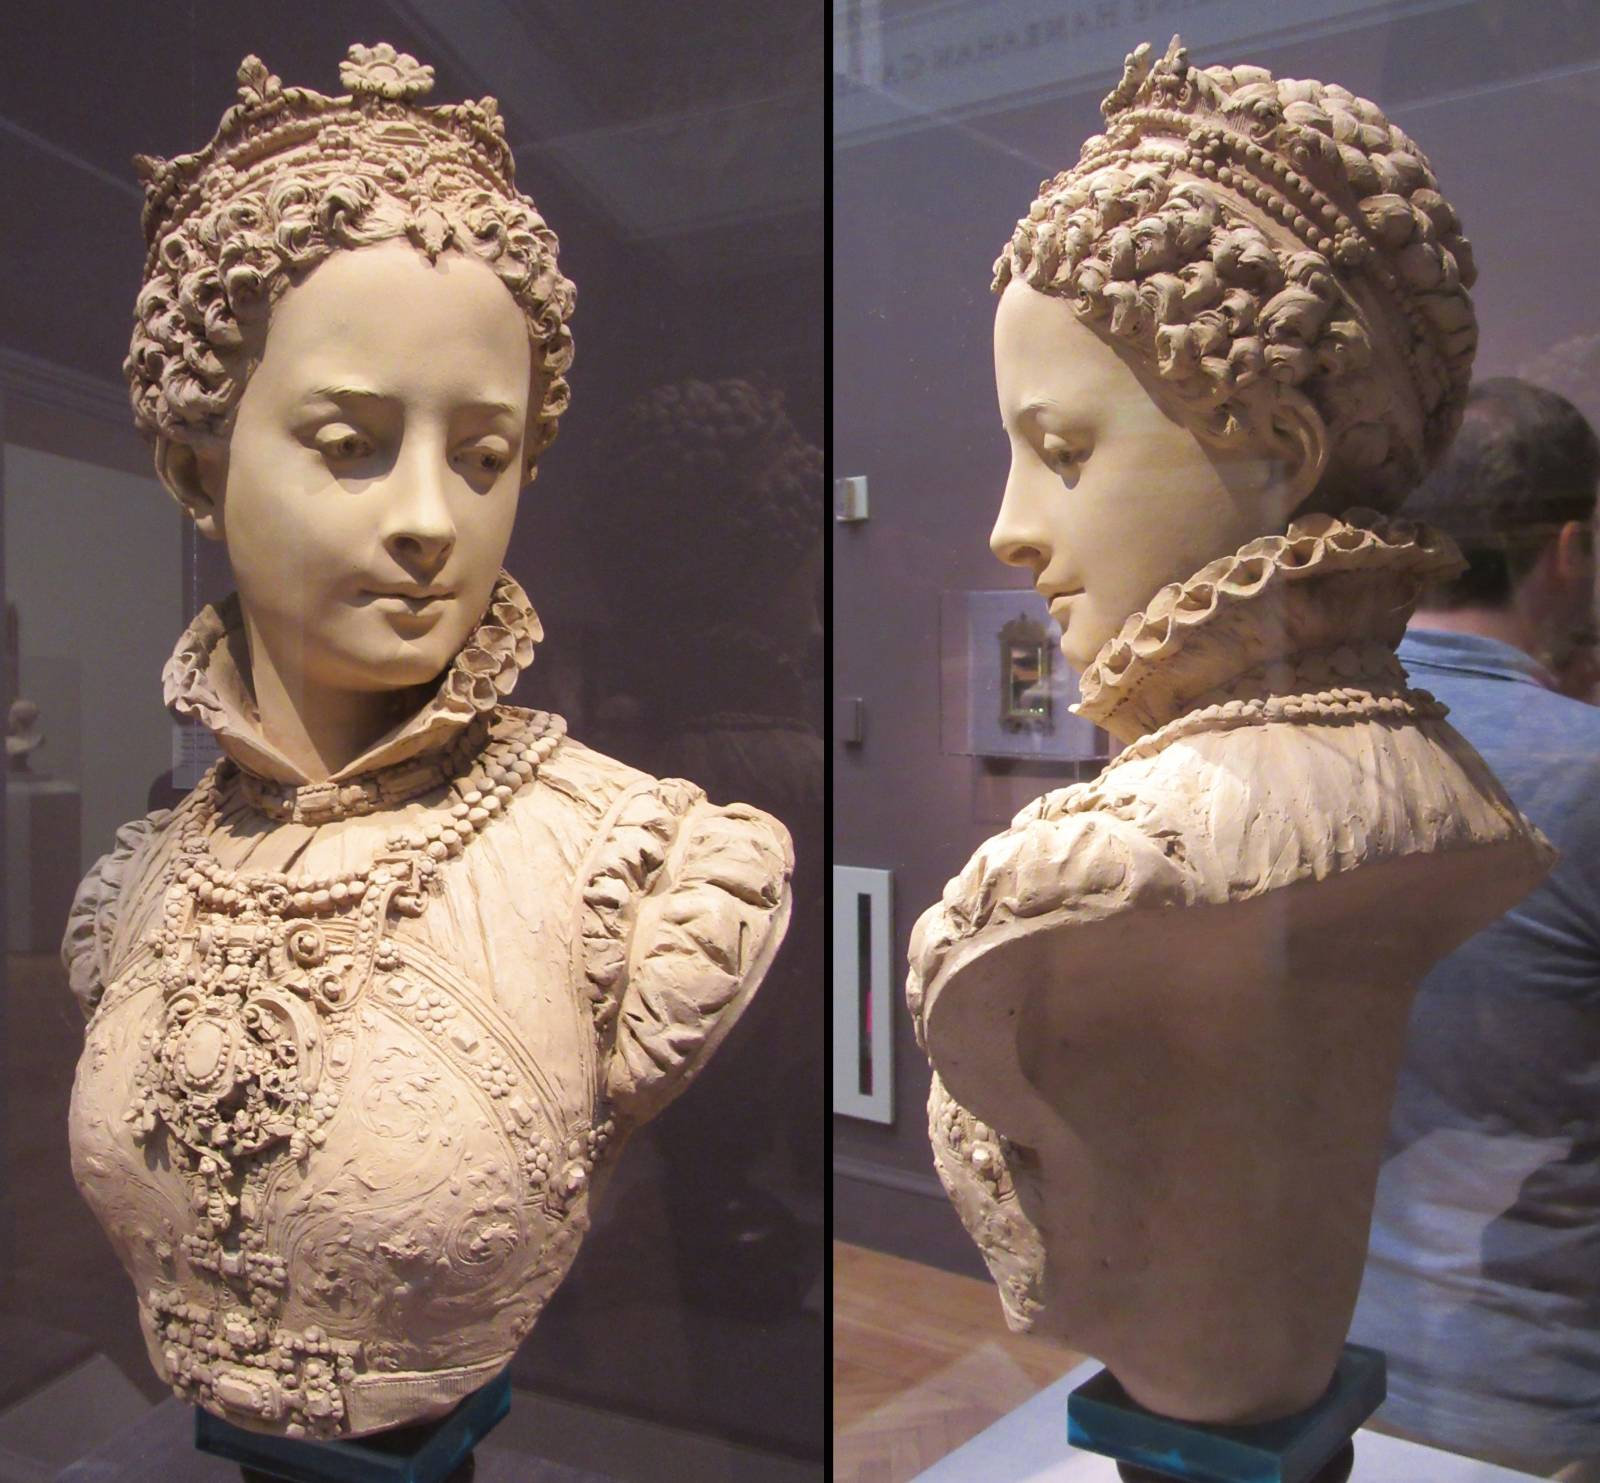 Carrier-Belleuse, Mary Queen of Scots